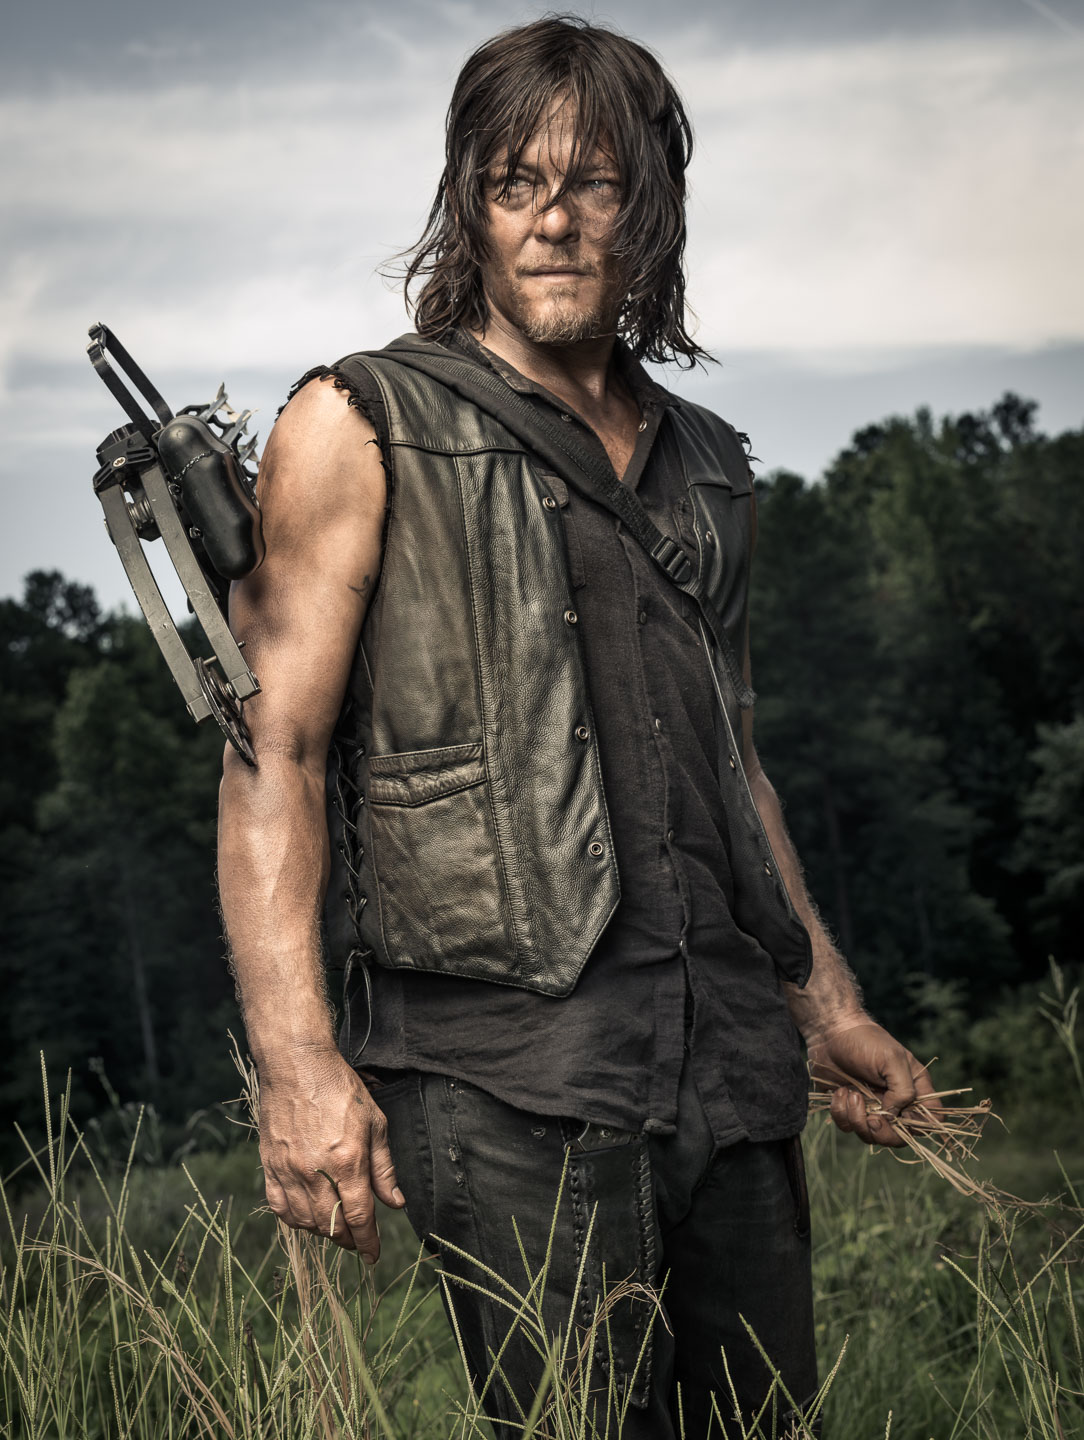 winters_ew_walking_dead_norman_reedus_7220